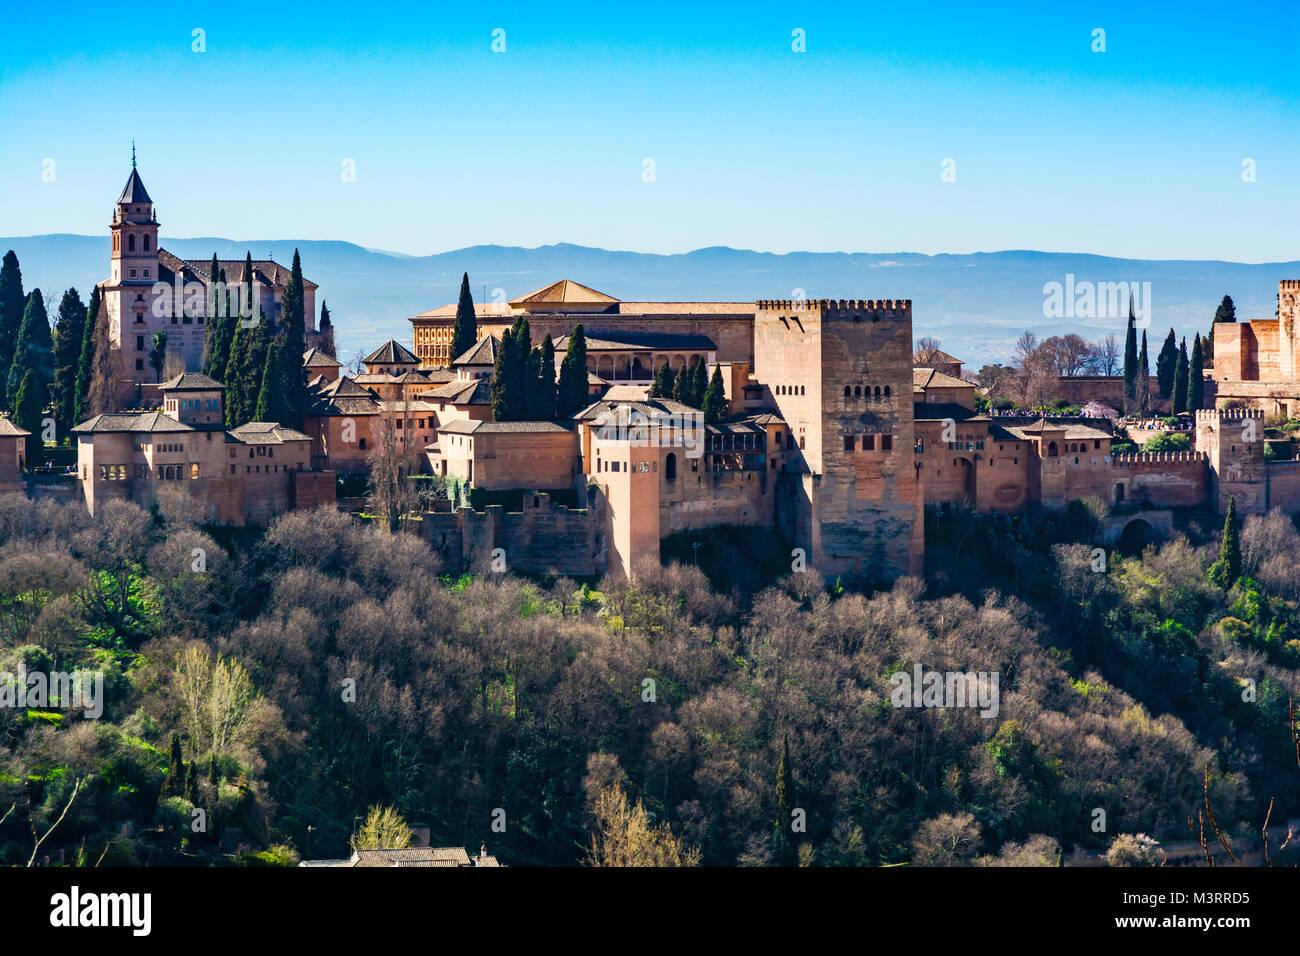 Granada, Spain: Alhambra palace and fortress complex. - Stock Image